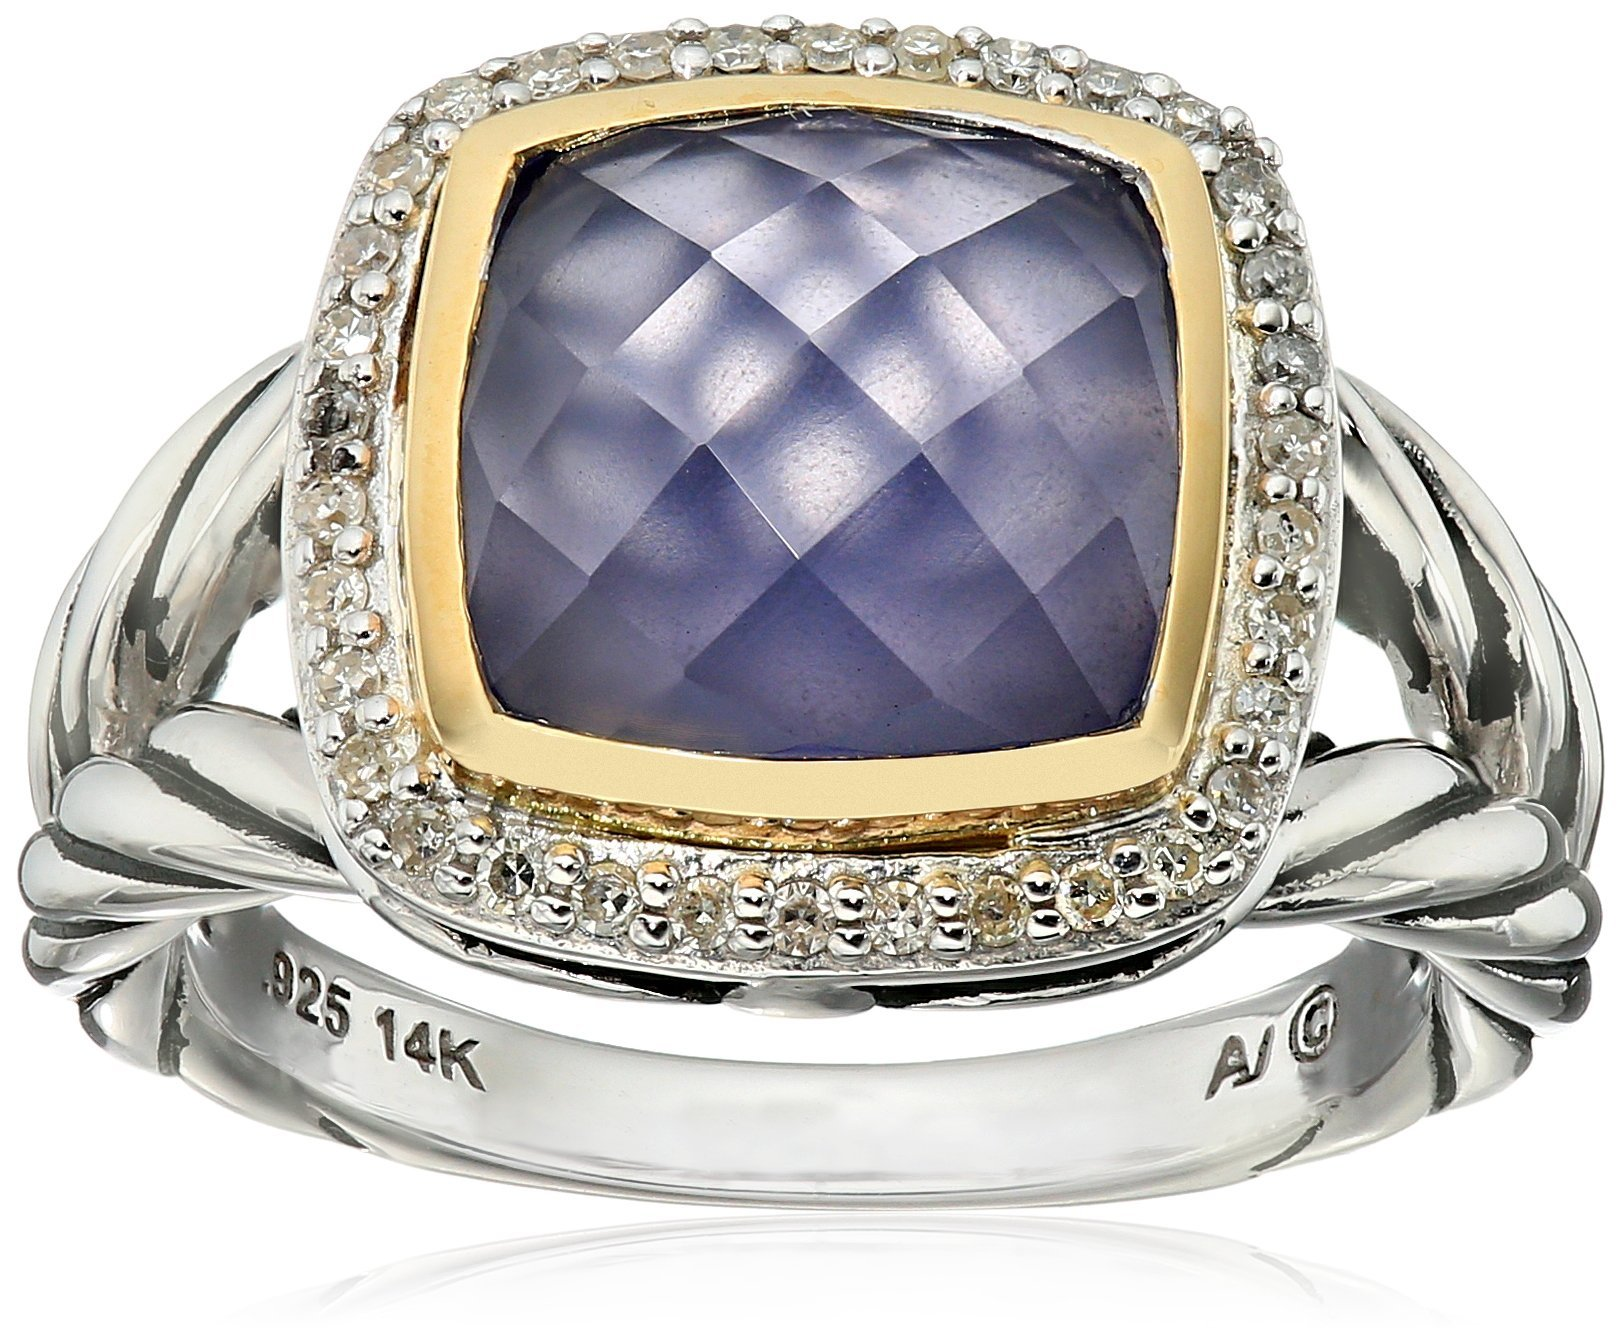 SG Sterling Silver and 14k Yellow Gold Cushion Cut Blue Chalcedony with Diamond Ring (1/10cttw, I-J Color, I2-I3 Clarity), Size 7